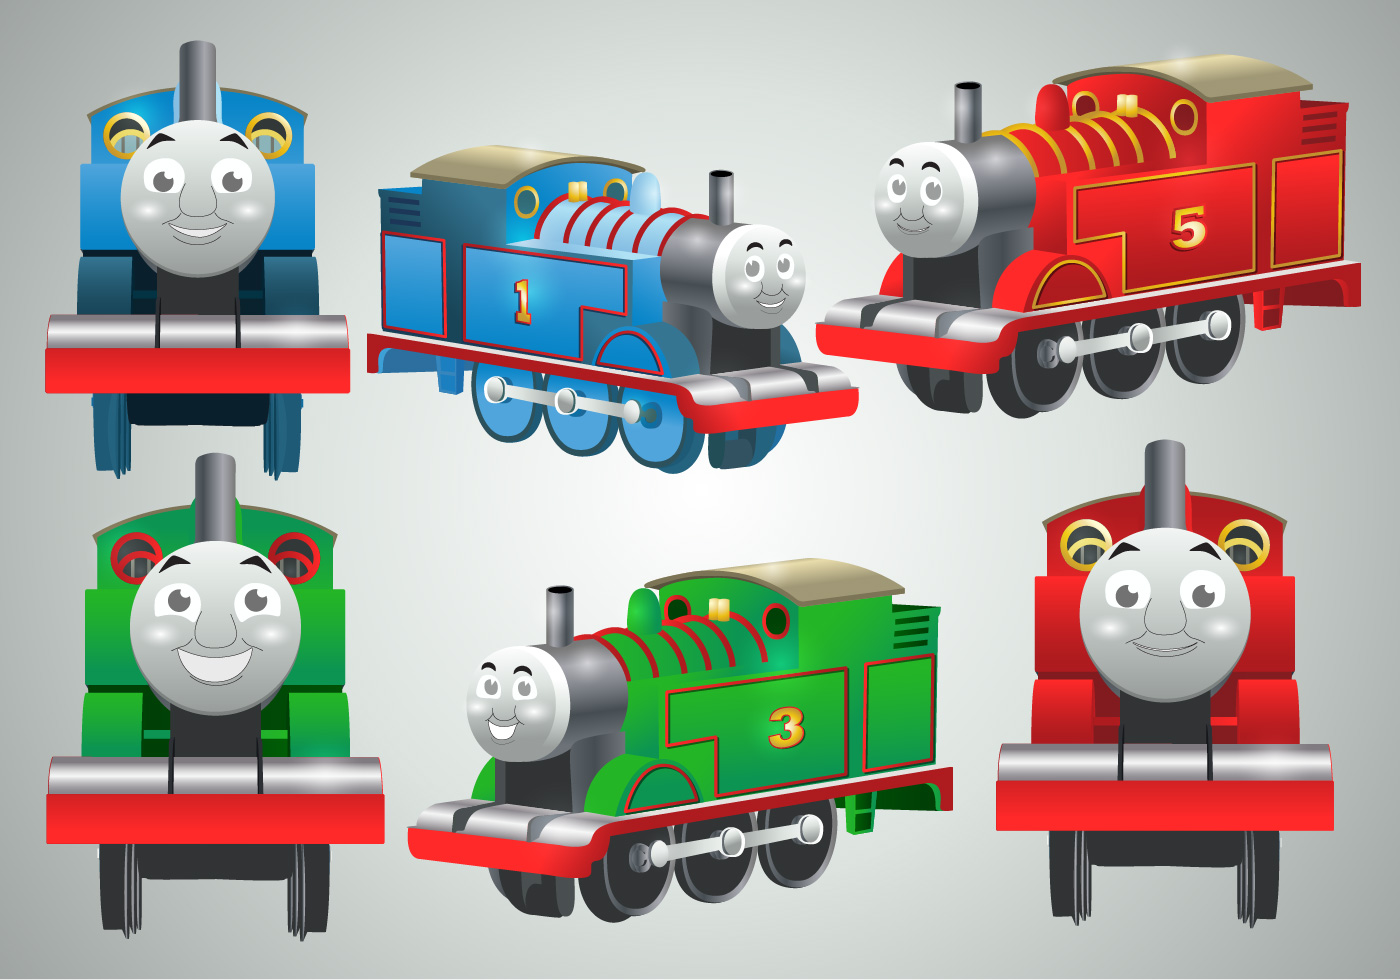 It's just an image of Crazy Thomas the Train Images Free